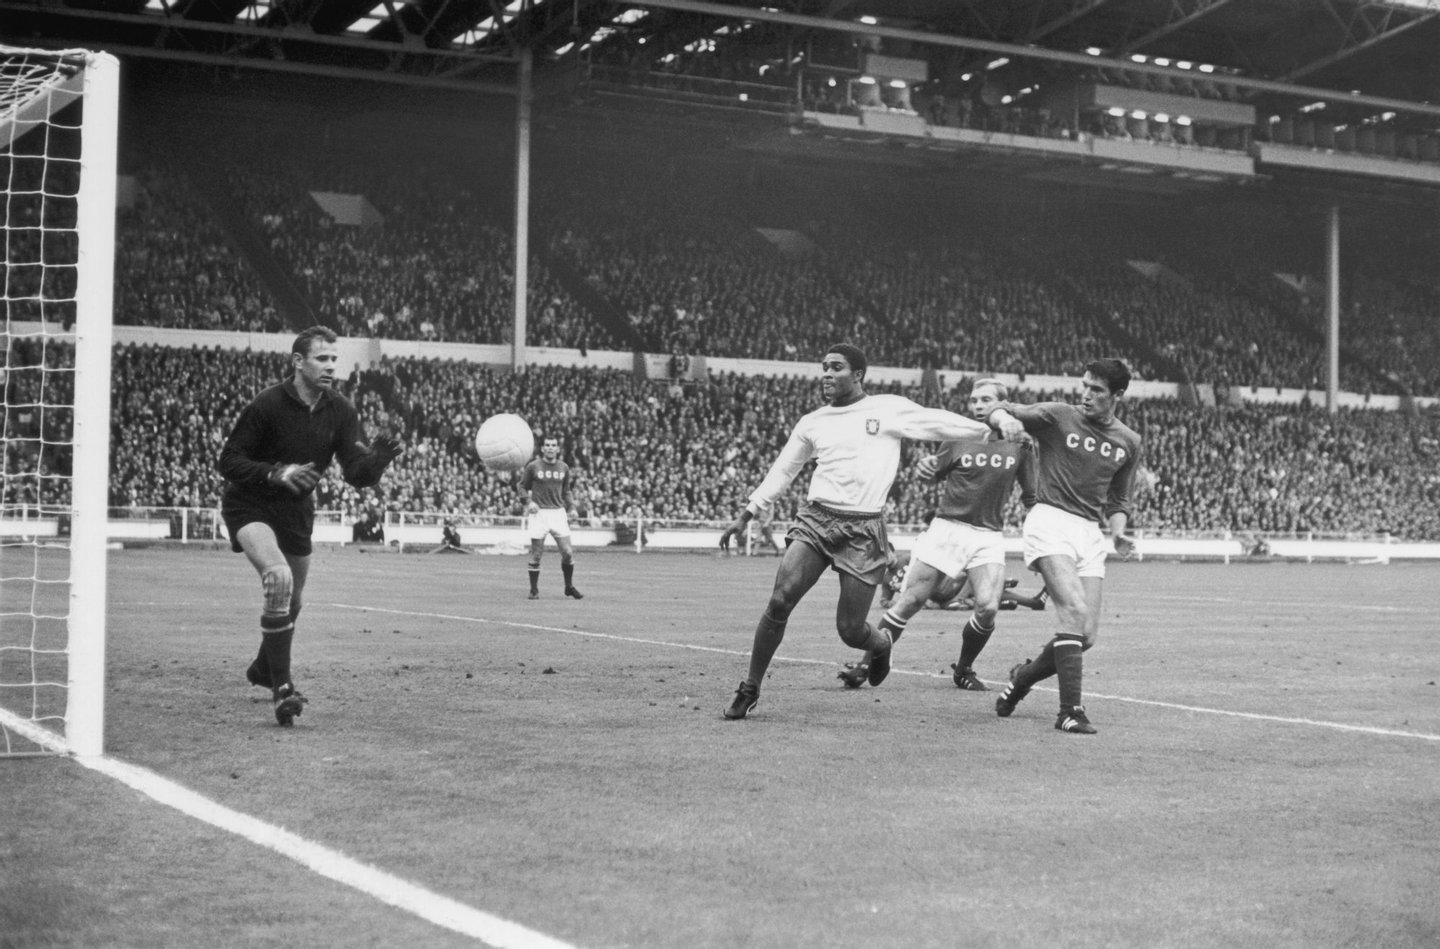 Portugal's Eusebio forces his way between two Russian players, only to see his shot saved by Russian goalkeeper Lev Yashin, during the World Cup match at Wembley Stadium, 28th July 1966. Portugal beat Russia 2-1. (Photo by Keystone/Hulton Archive/Getty Images)